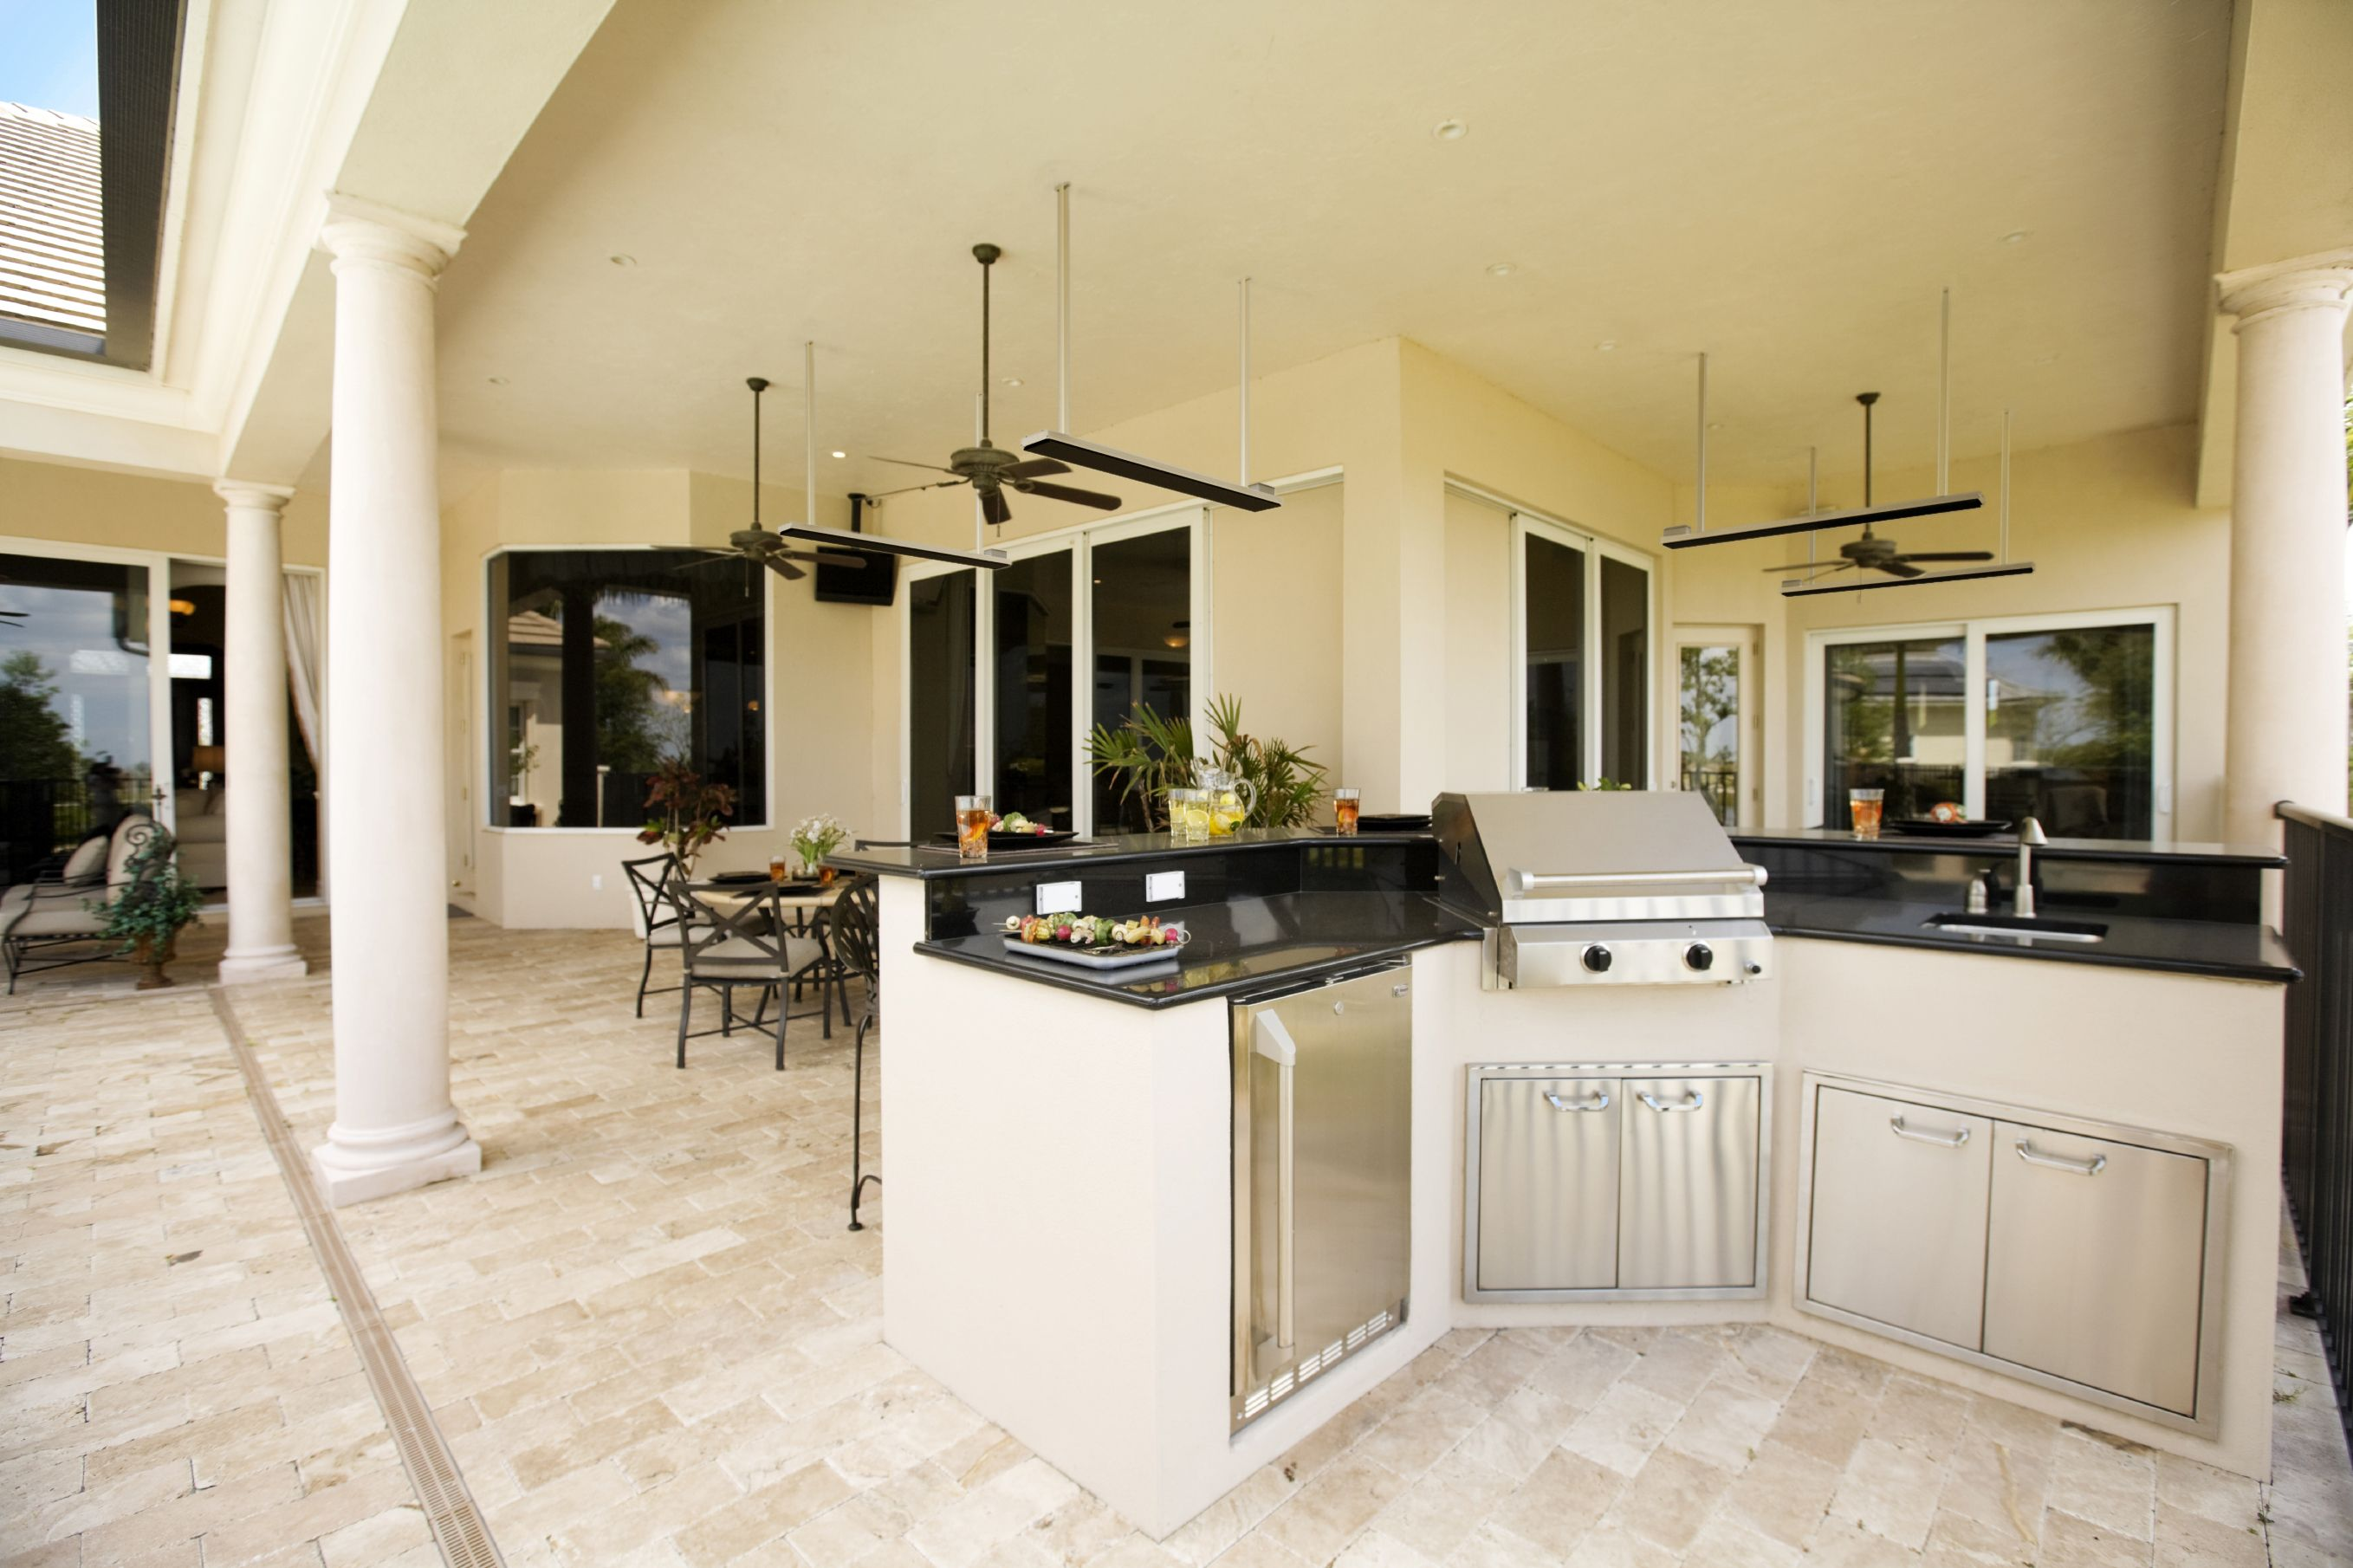 Outdoor dining, alfresco dining, patio heater, outdoor kitchen ...